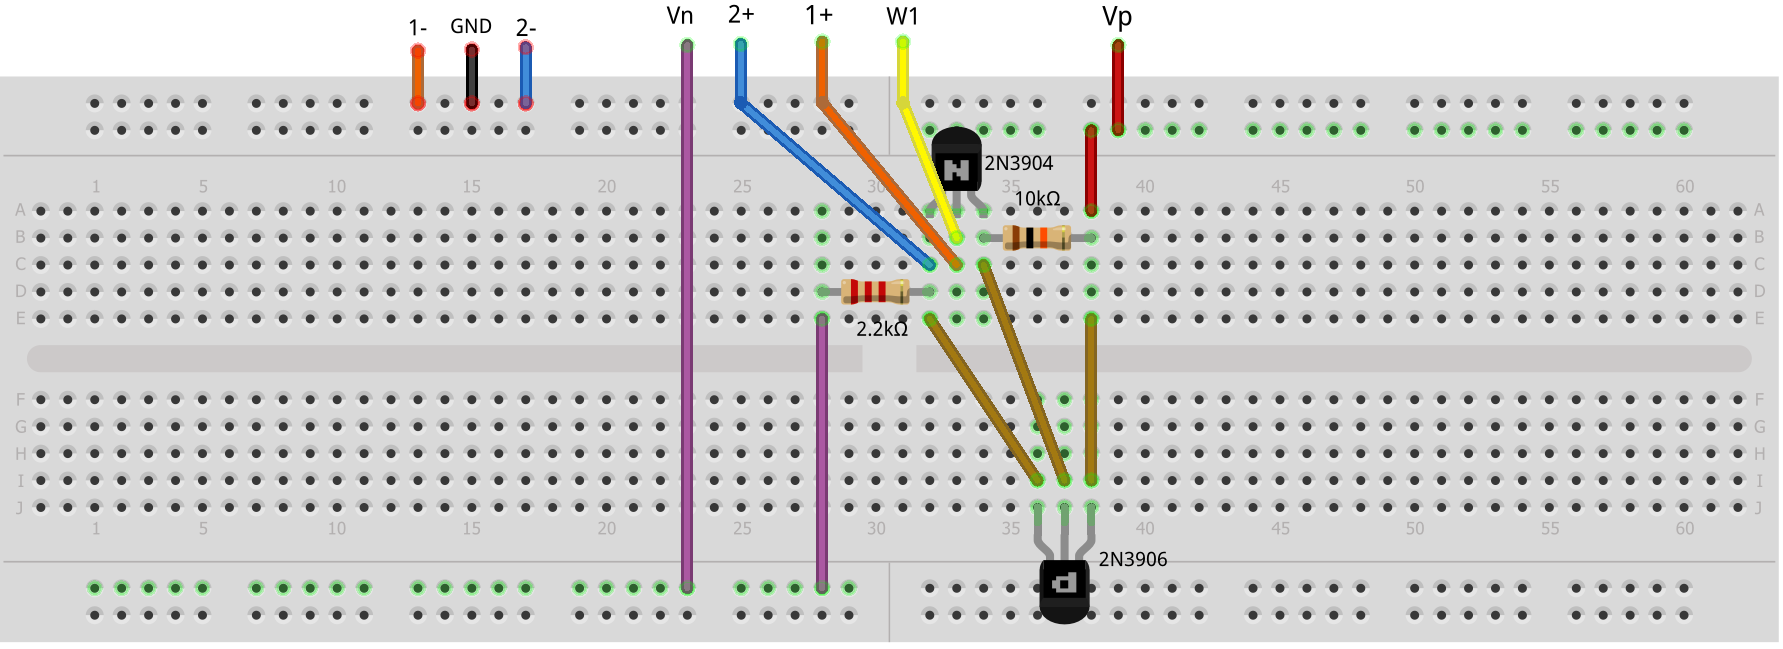 Activity 11 The Emitter Follower Bjt Analog Devices Wiki Circuit Idea Series Voltage Summer Wikibooks Open Books For An Figure 24 Complementary Feedback Pair Breadboard